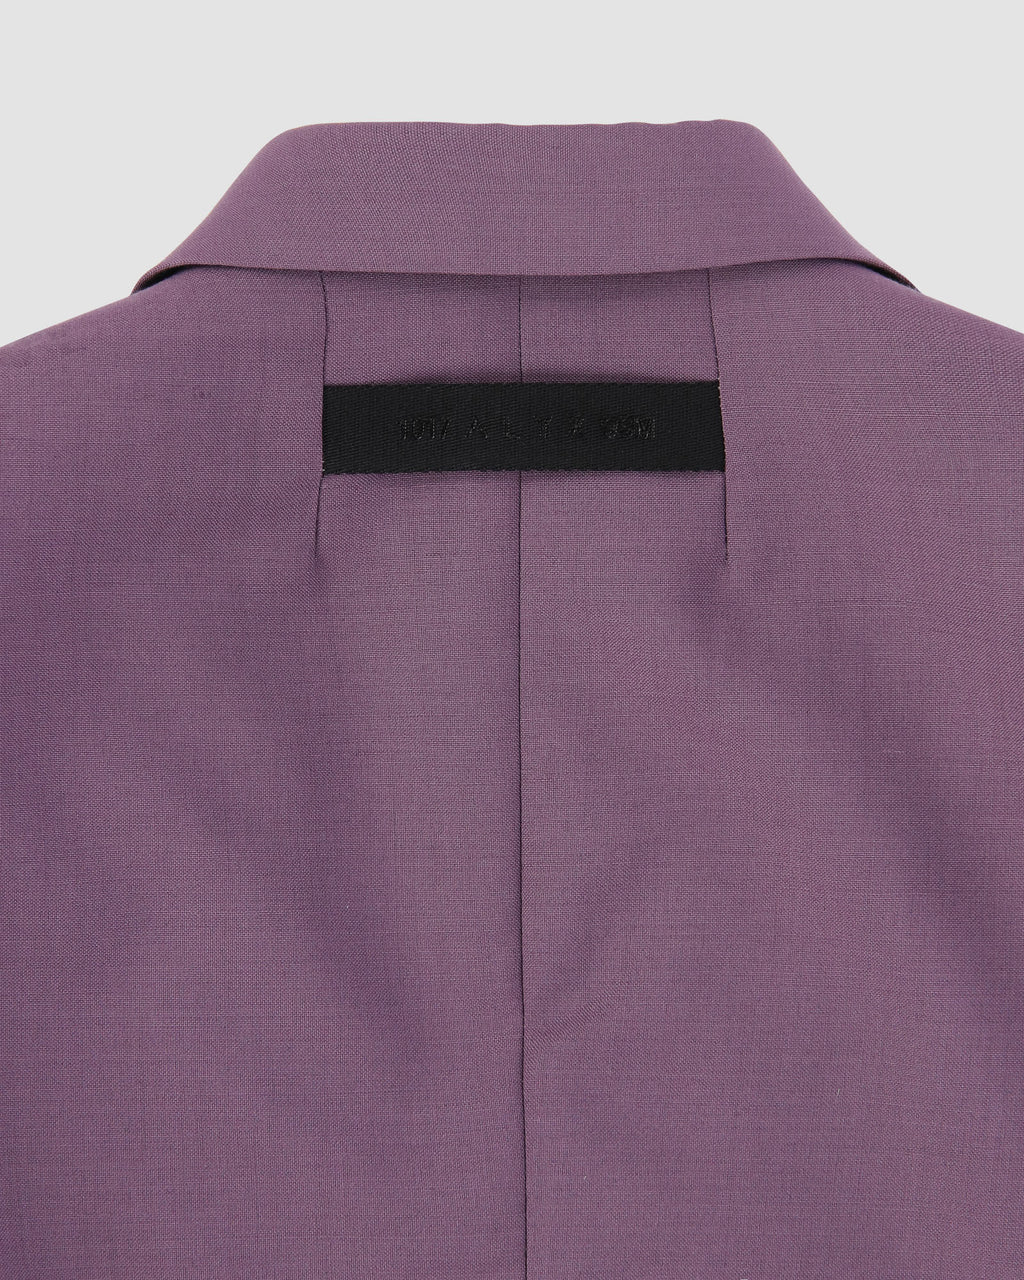 1017 ALYX 9SM | CLASSIC BLAZER W CUBIX CHAIN | Blazer | Blazer, Google Shopping, PURPLE, S20, S20 Drop II, TAILORING, Woman, WOMEN